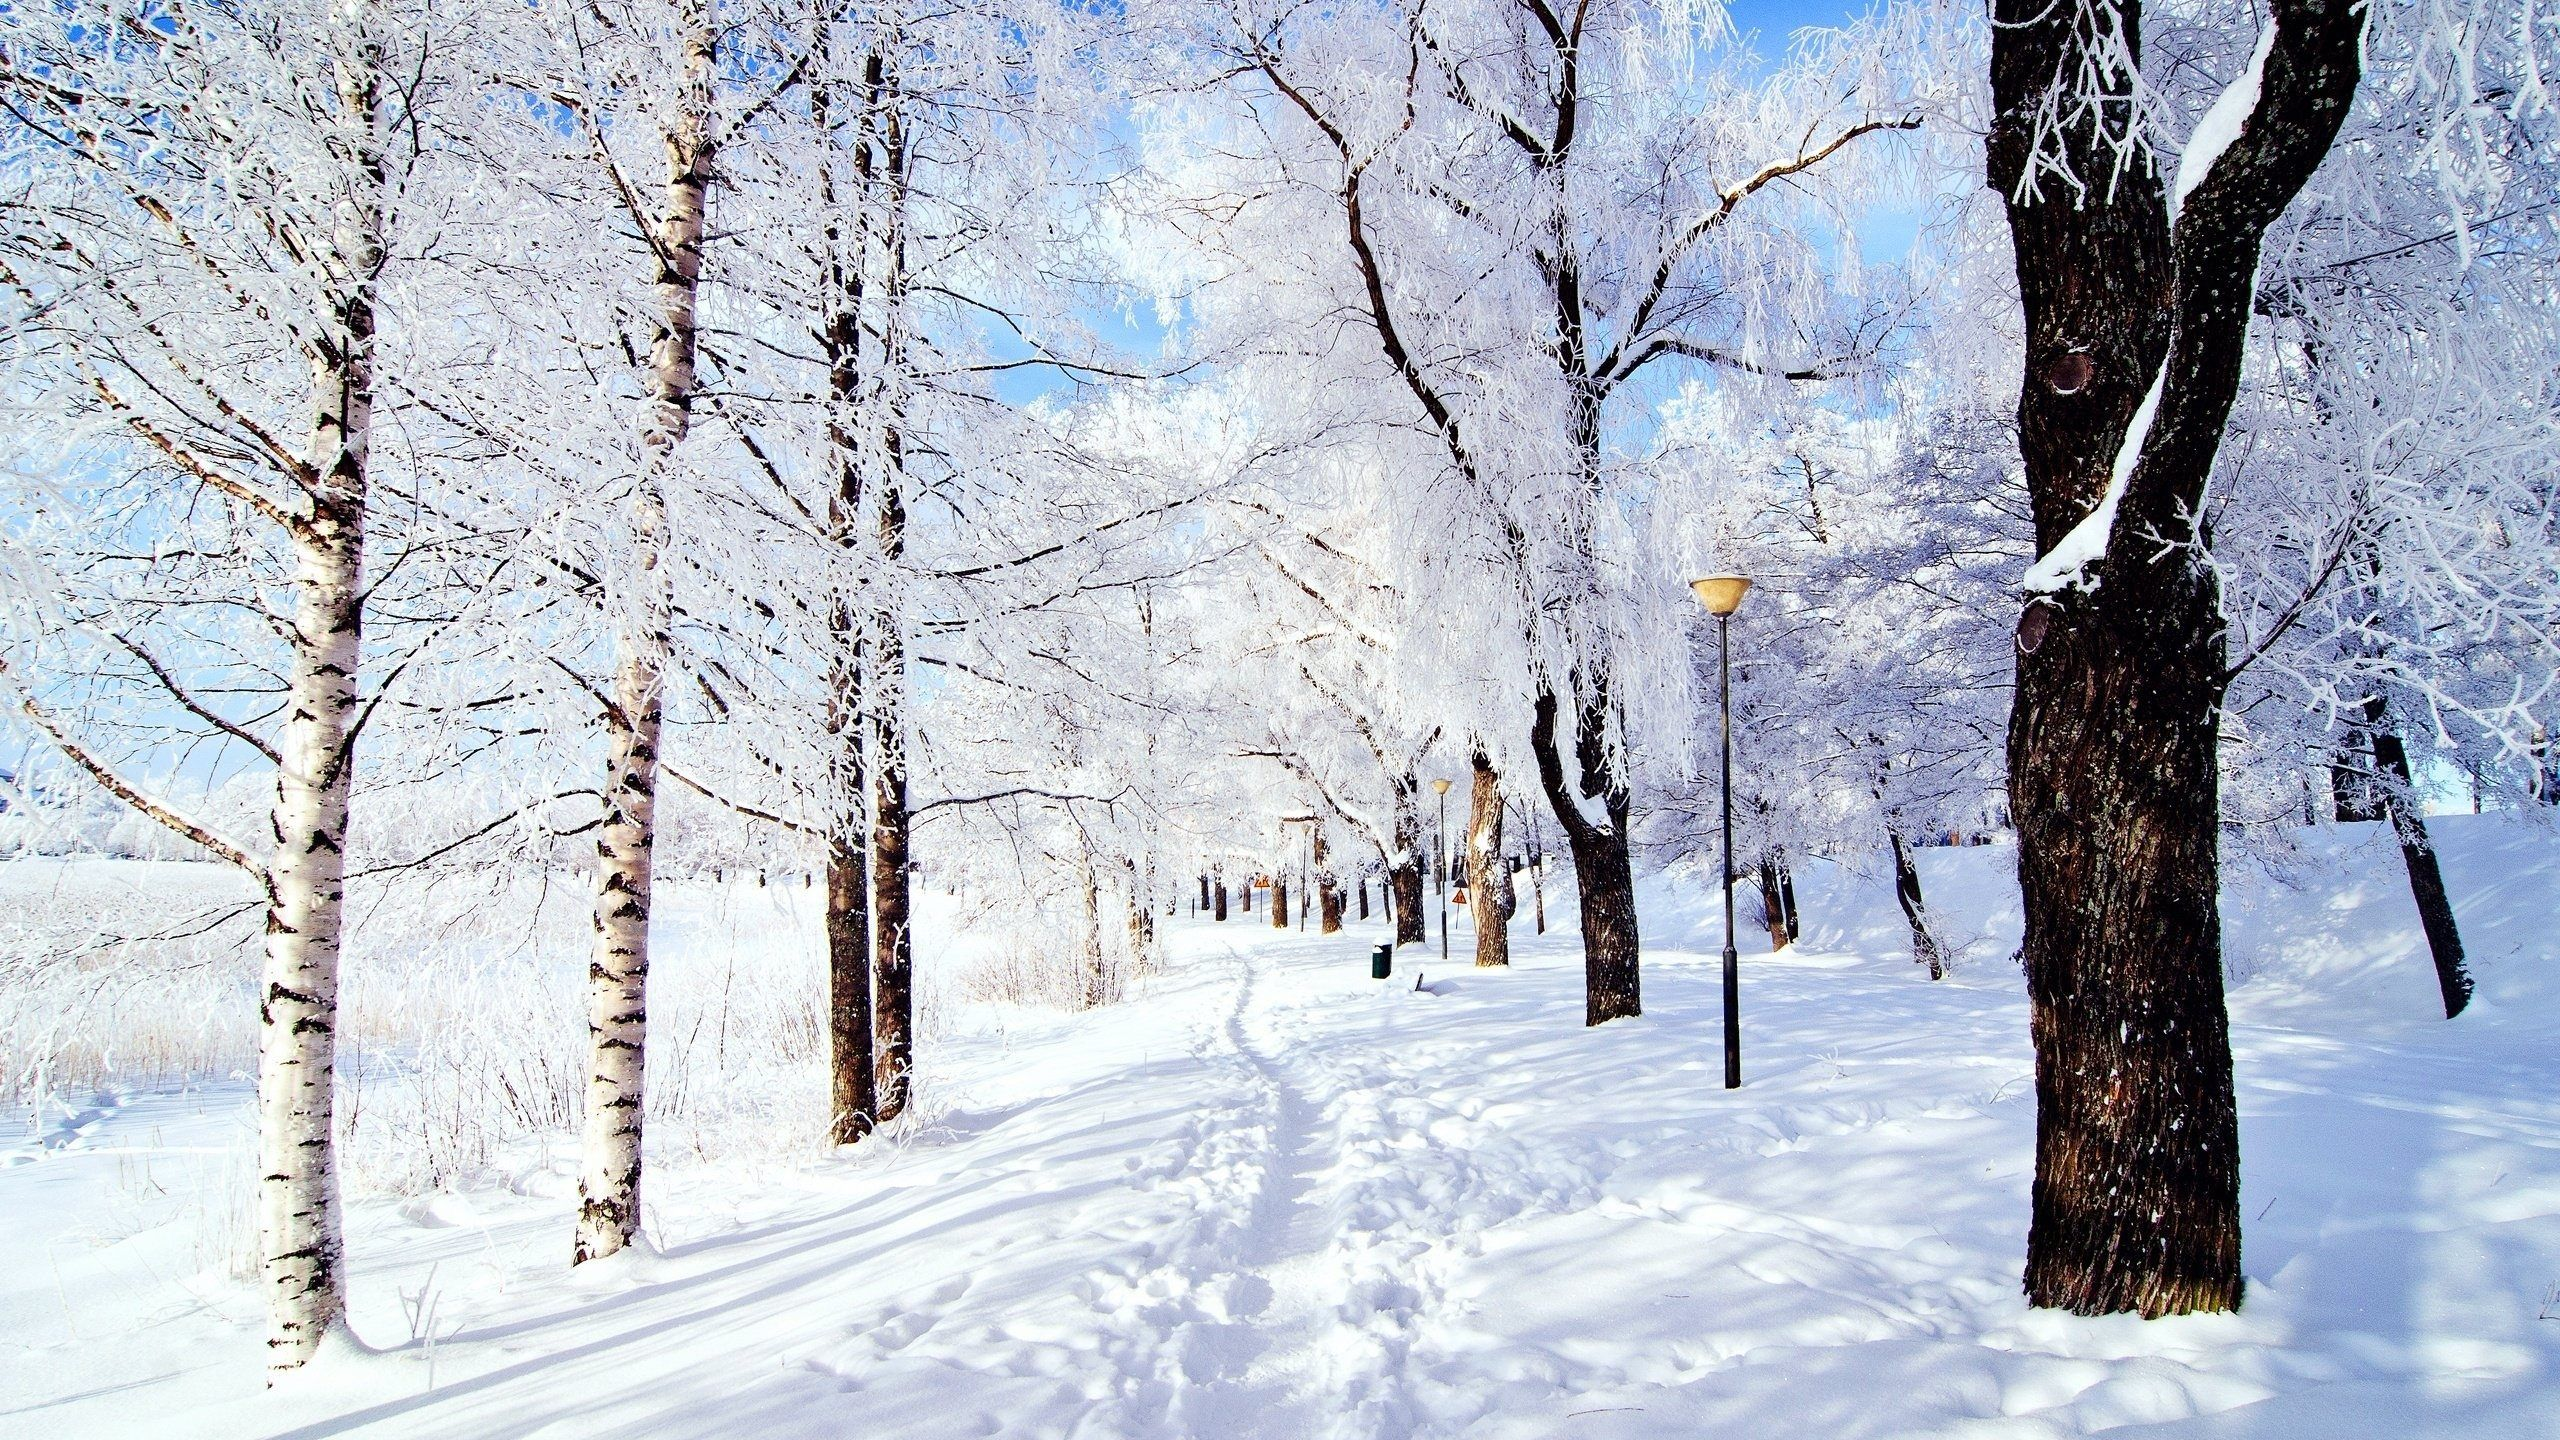 Snow wallpapers images on hd wallpapers pinterest snow snow wallpapers images on voltagebd Choice Image